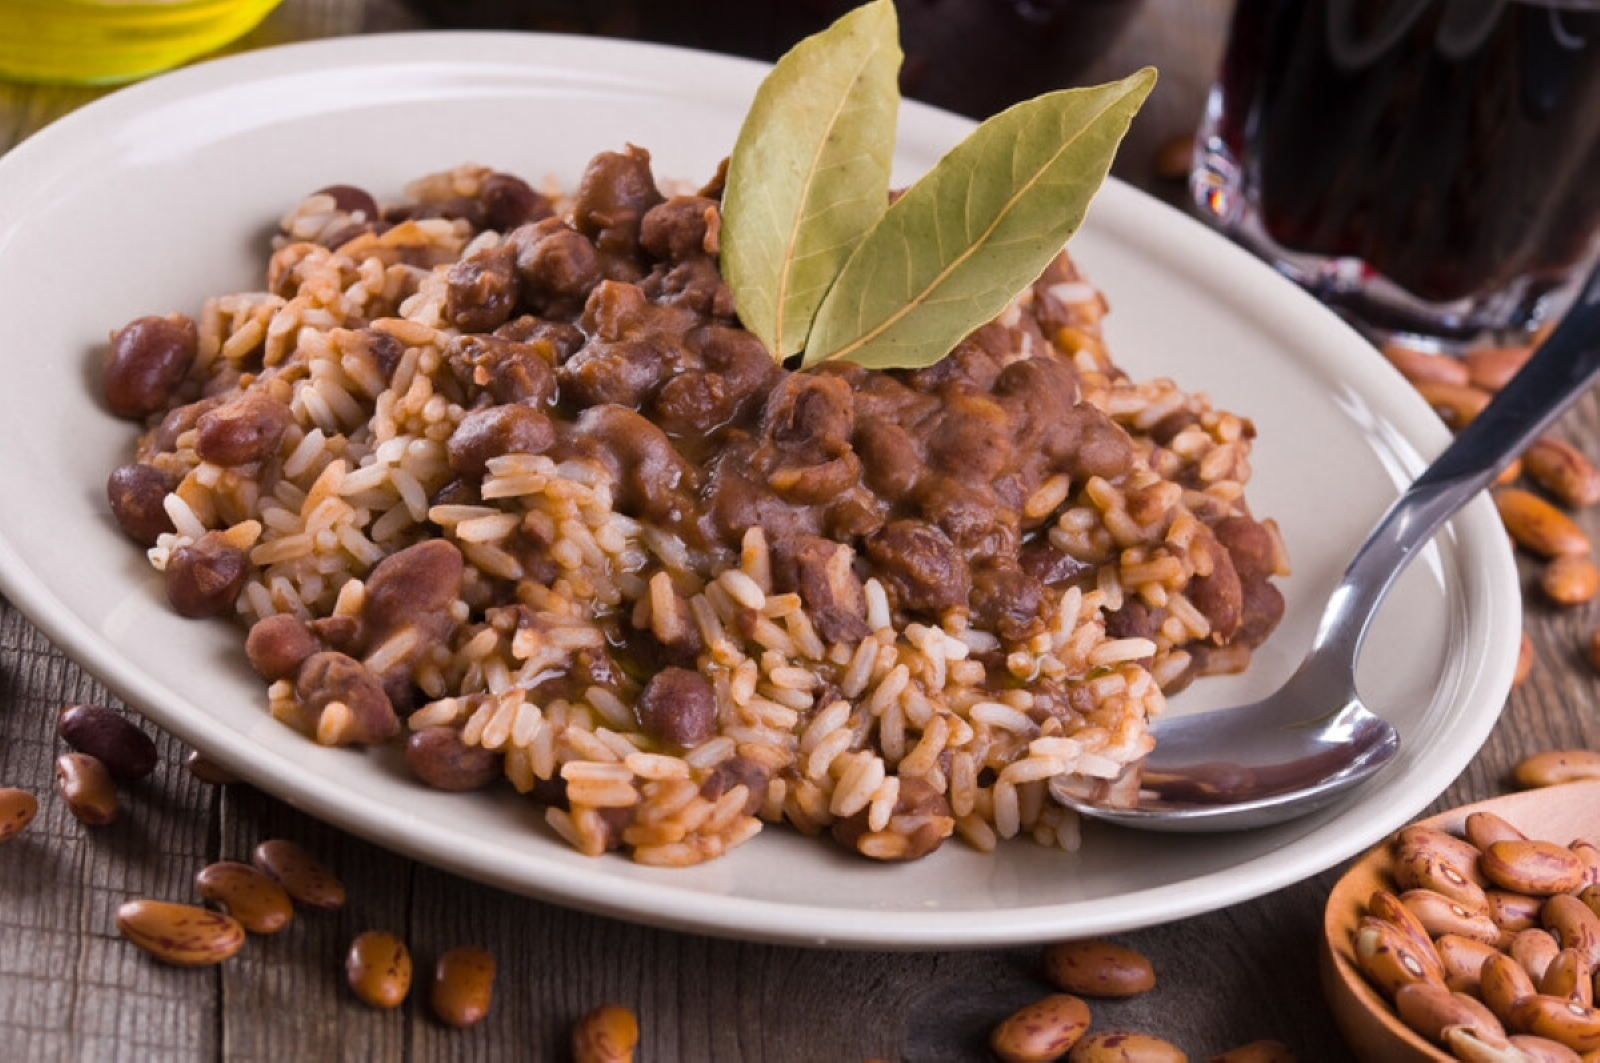 Cooked Rice and red Beans garnished with two bay leaves on a white plate with a spoon, dried beans are scattered around the plate sitting on a wood table